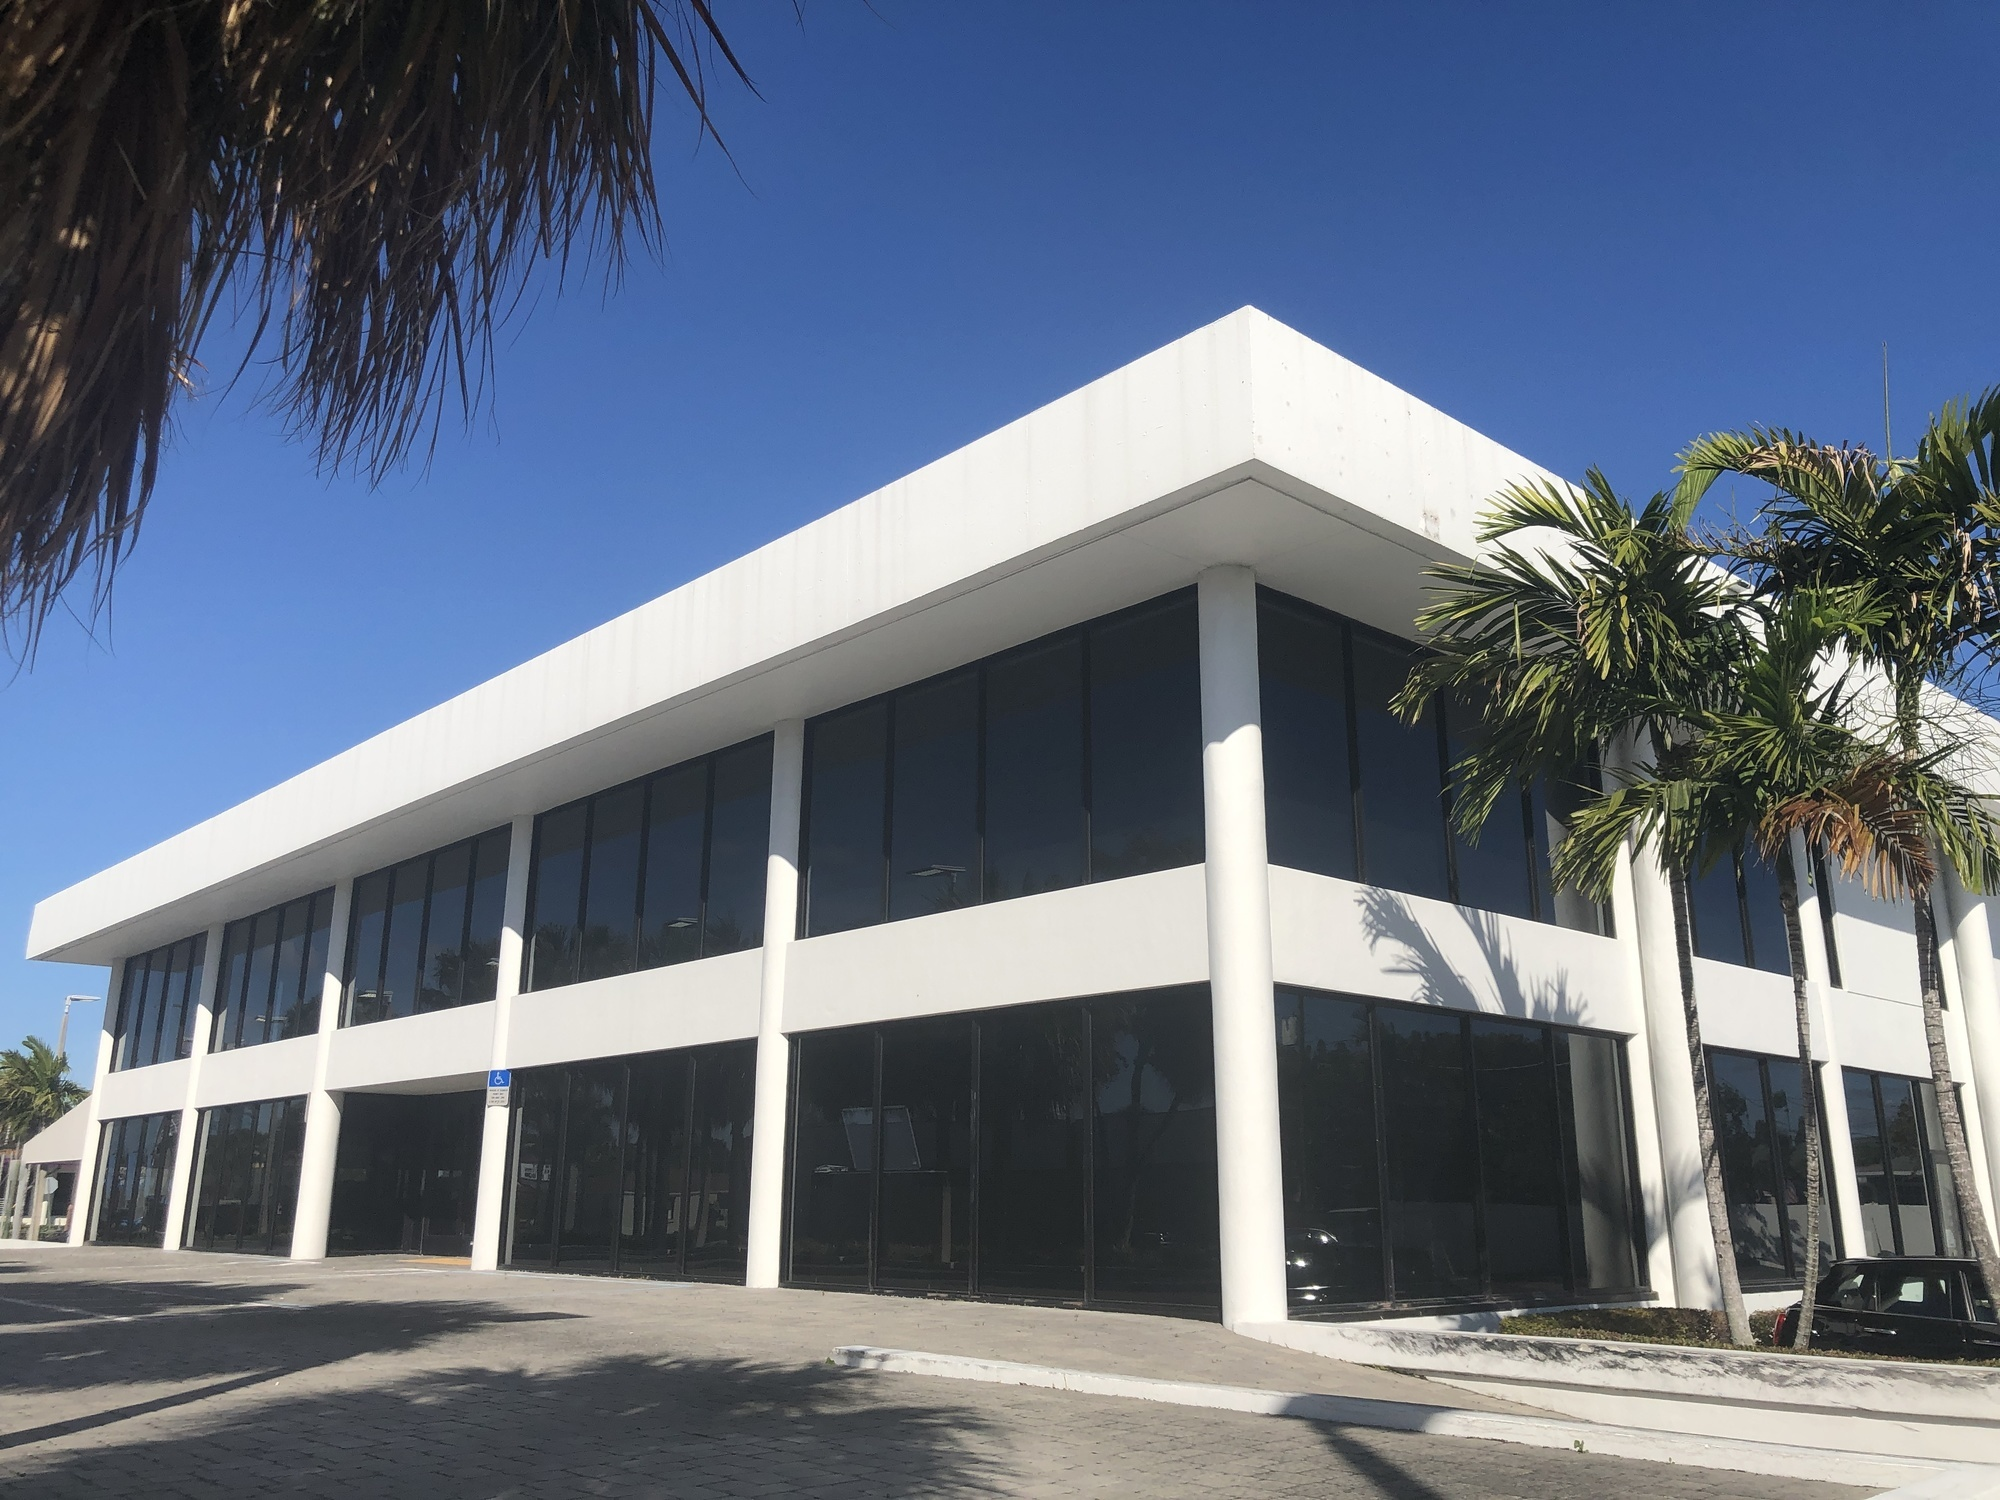 Commercial Office/Retail Property Fort Lauderdale FL